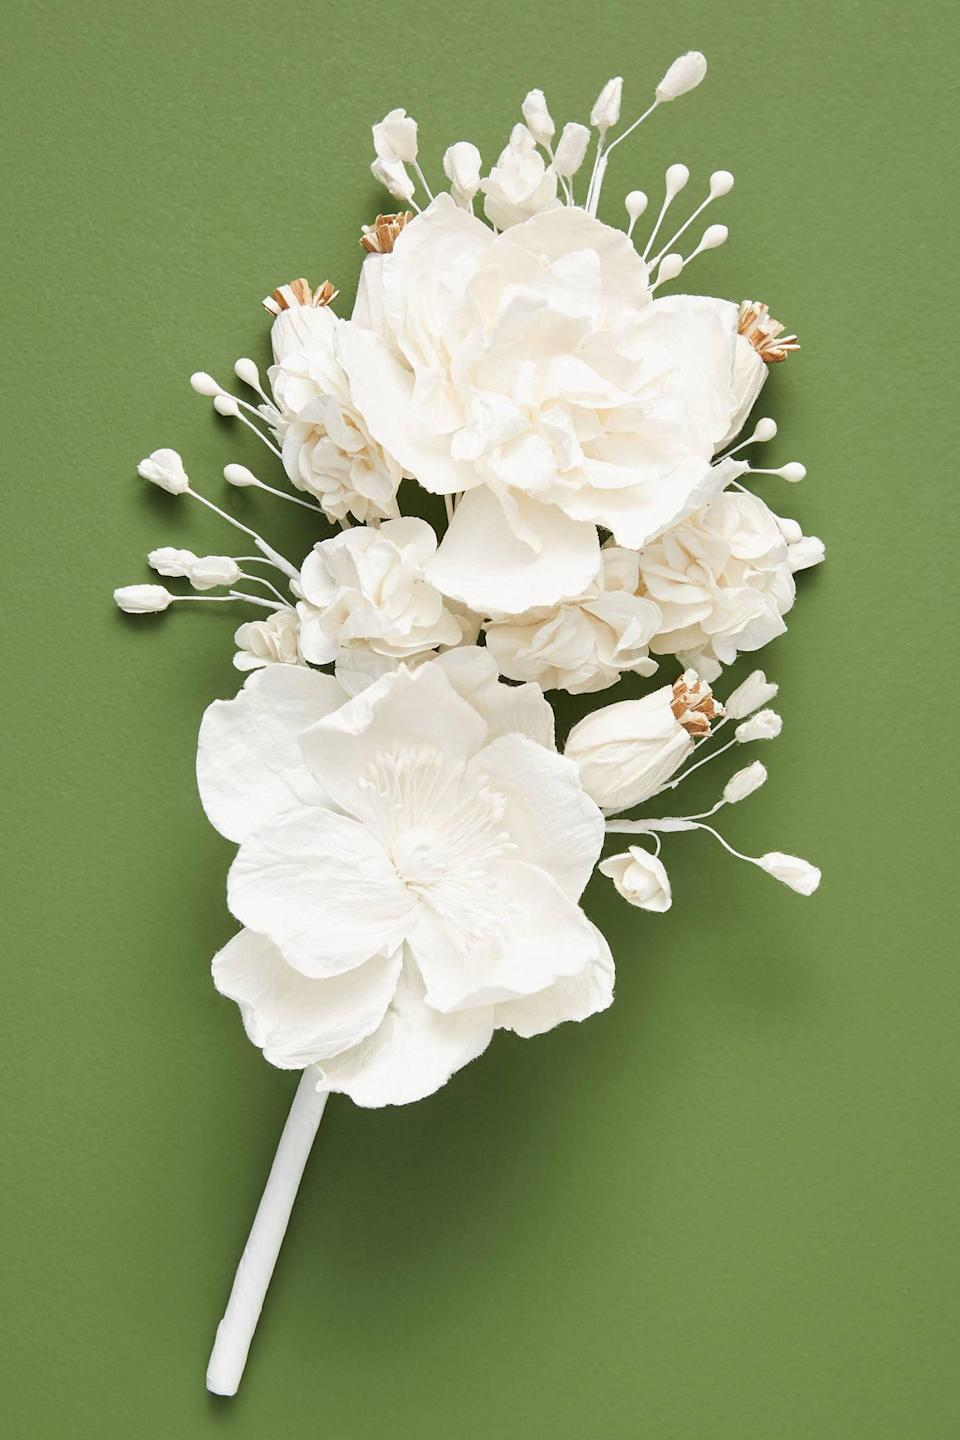 """<p>Create the ultimate centerpiece with this <a href=""""https://www.popsugar.com/buy/Mulberry-Paper-Flower-Stem-490451?p_name=Mulberry%20Paper%20Flower%20Stem&retailer=anthropologie.com&pid=490451&price=24&evar1=casa%3Aus&evar9=46615300&evar98=https%3A%2F%2Fwww.popsugar.com%2Fhome%2Fphoto-gallery%2F46615300%2Fimage%2F46615321%2FMulberry-Paper-Flower-Stem&list1=shopping%2Canthropologie%2Choliday%2Cchristmas%2Cchristmas%20decorations%2Choliday%20decor%2Chome%20shopping&prop13=mobile&pdata=1"""" rel=""""nofollow noopener"""" class=""""link rapid-noclick-resp"""" target=""""_blank"""" data-ylk=""""slk:Mulberry Paper Flower Stem"""">Mulberry Paper Flower Stem</a> ($24).</p>"""